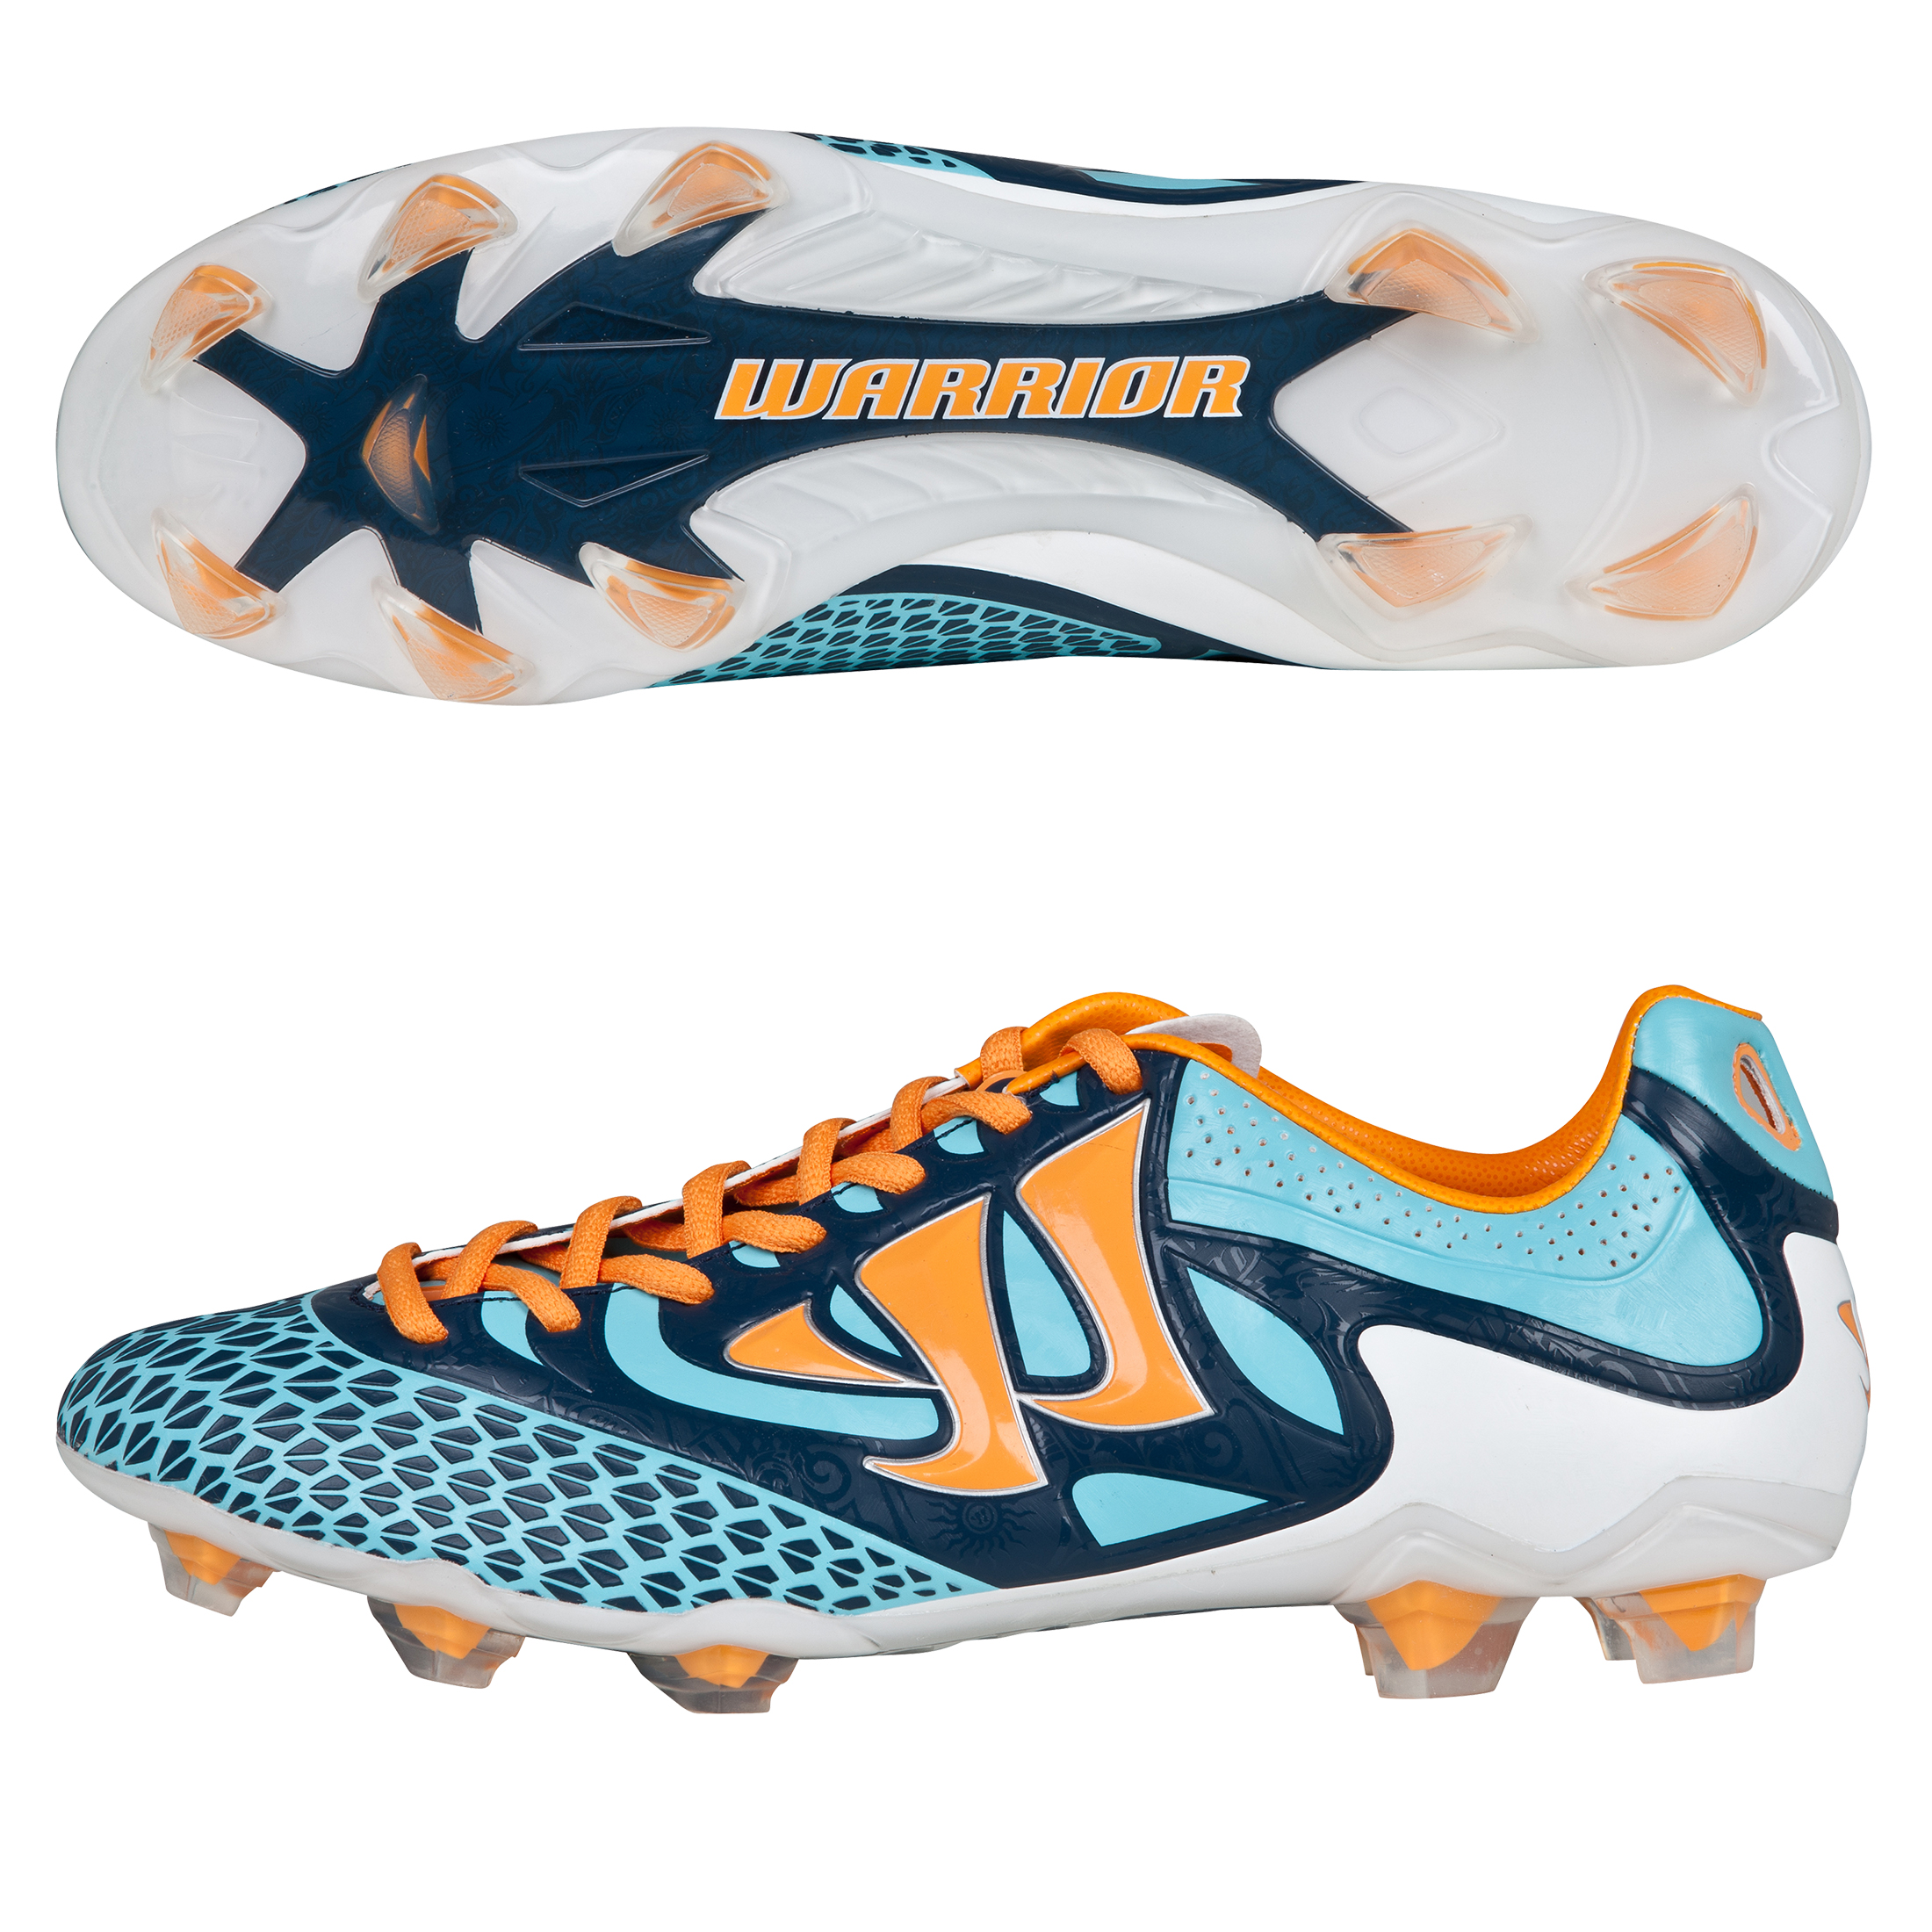 Warrior Sports Skreamer Combat Firm Ground Football Boots - Blue Radiance/Bright Marigold/Insignia Blue